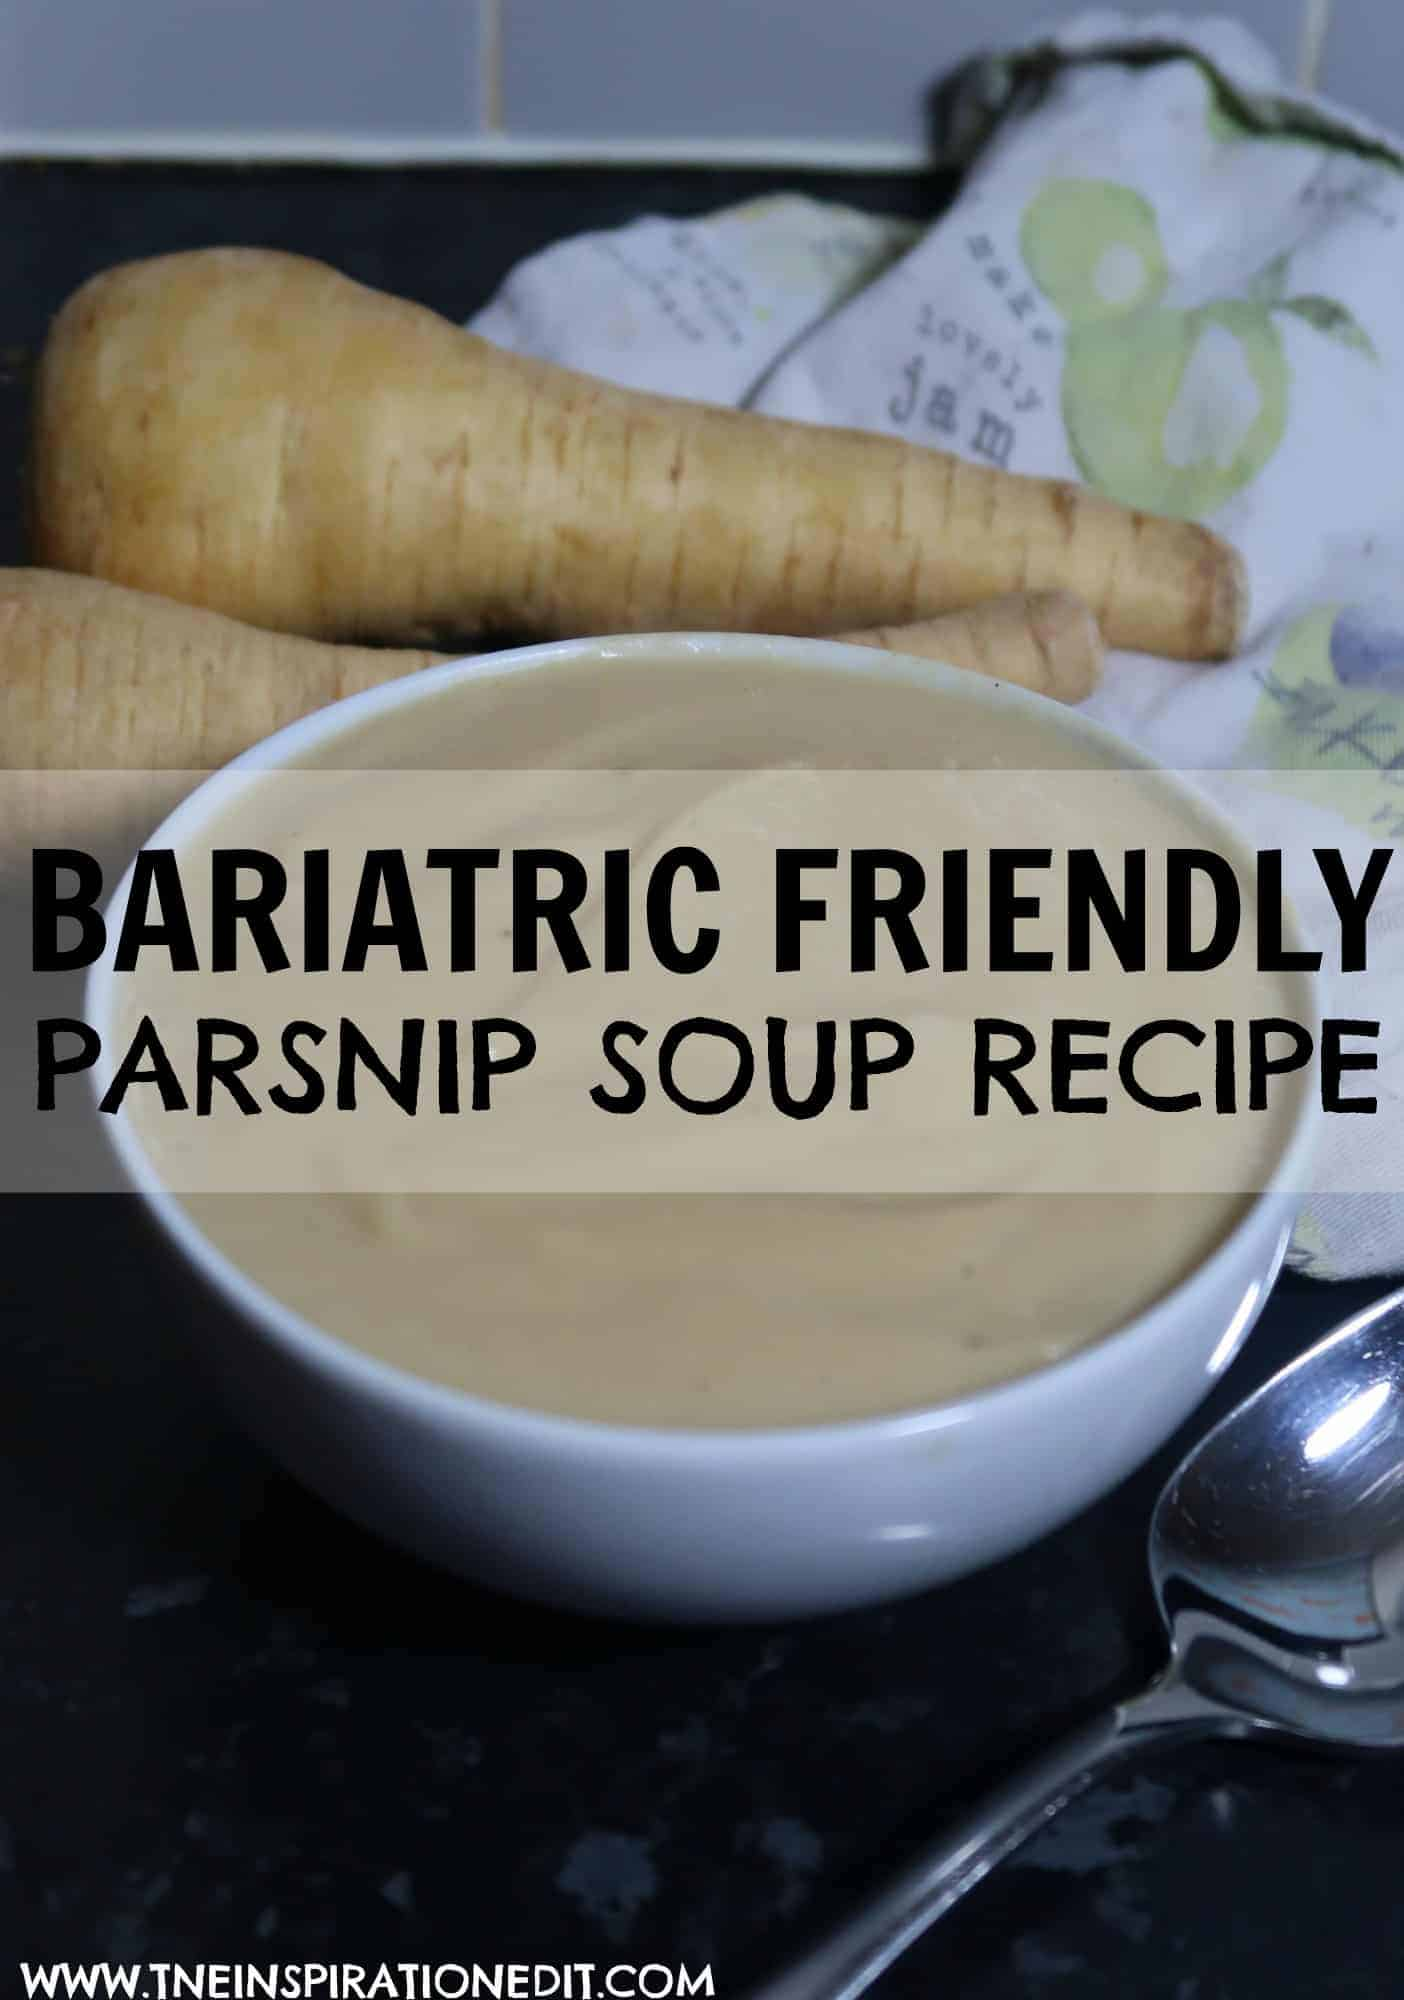 PARSNIP SOUP RECIPE FOR GASTRIC BYPASS PATIENTS